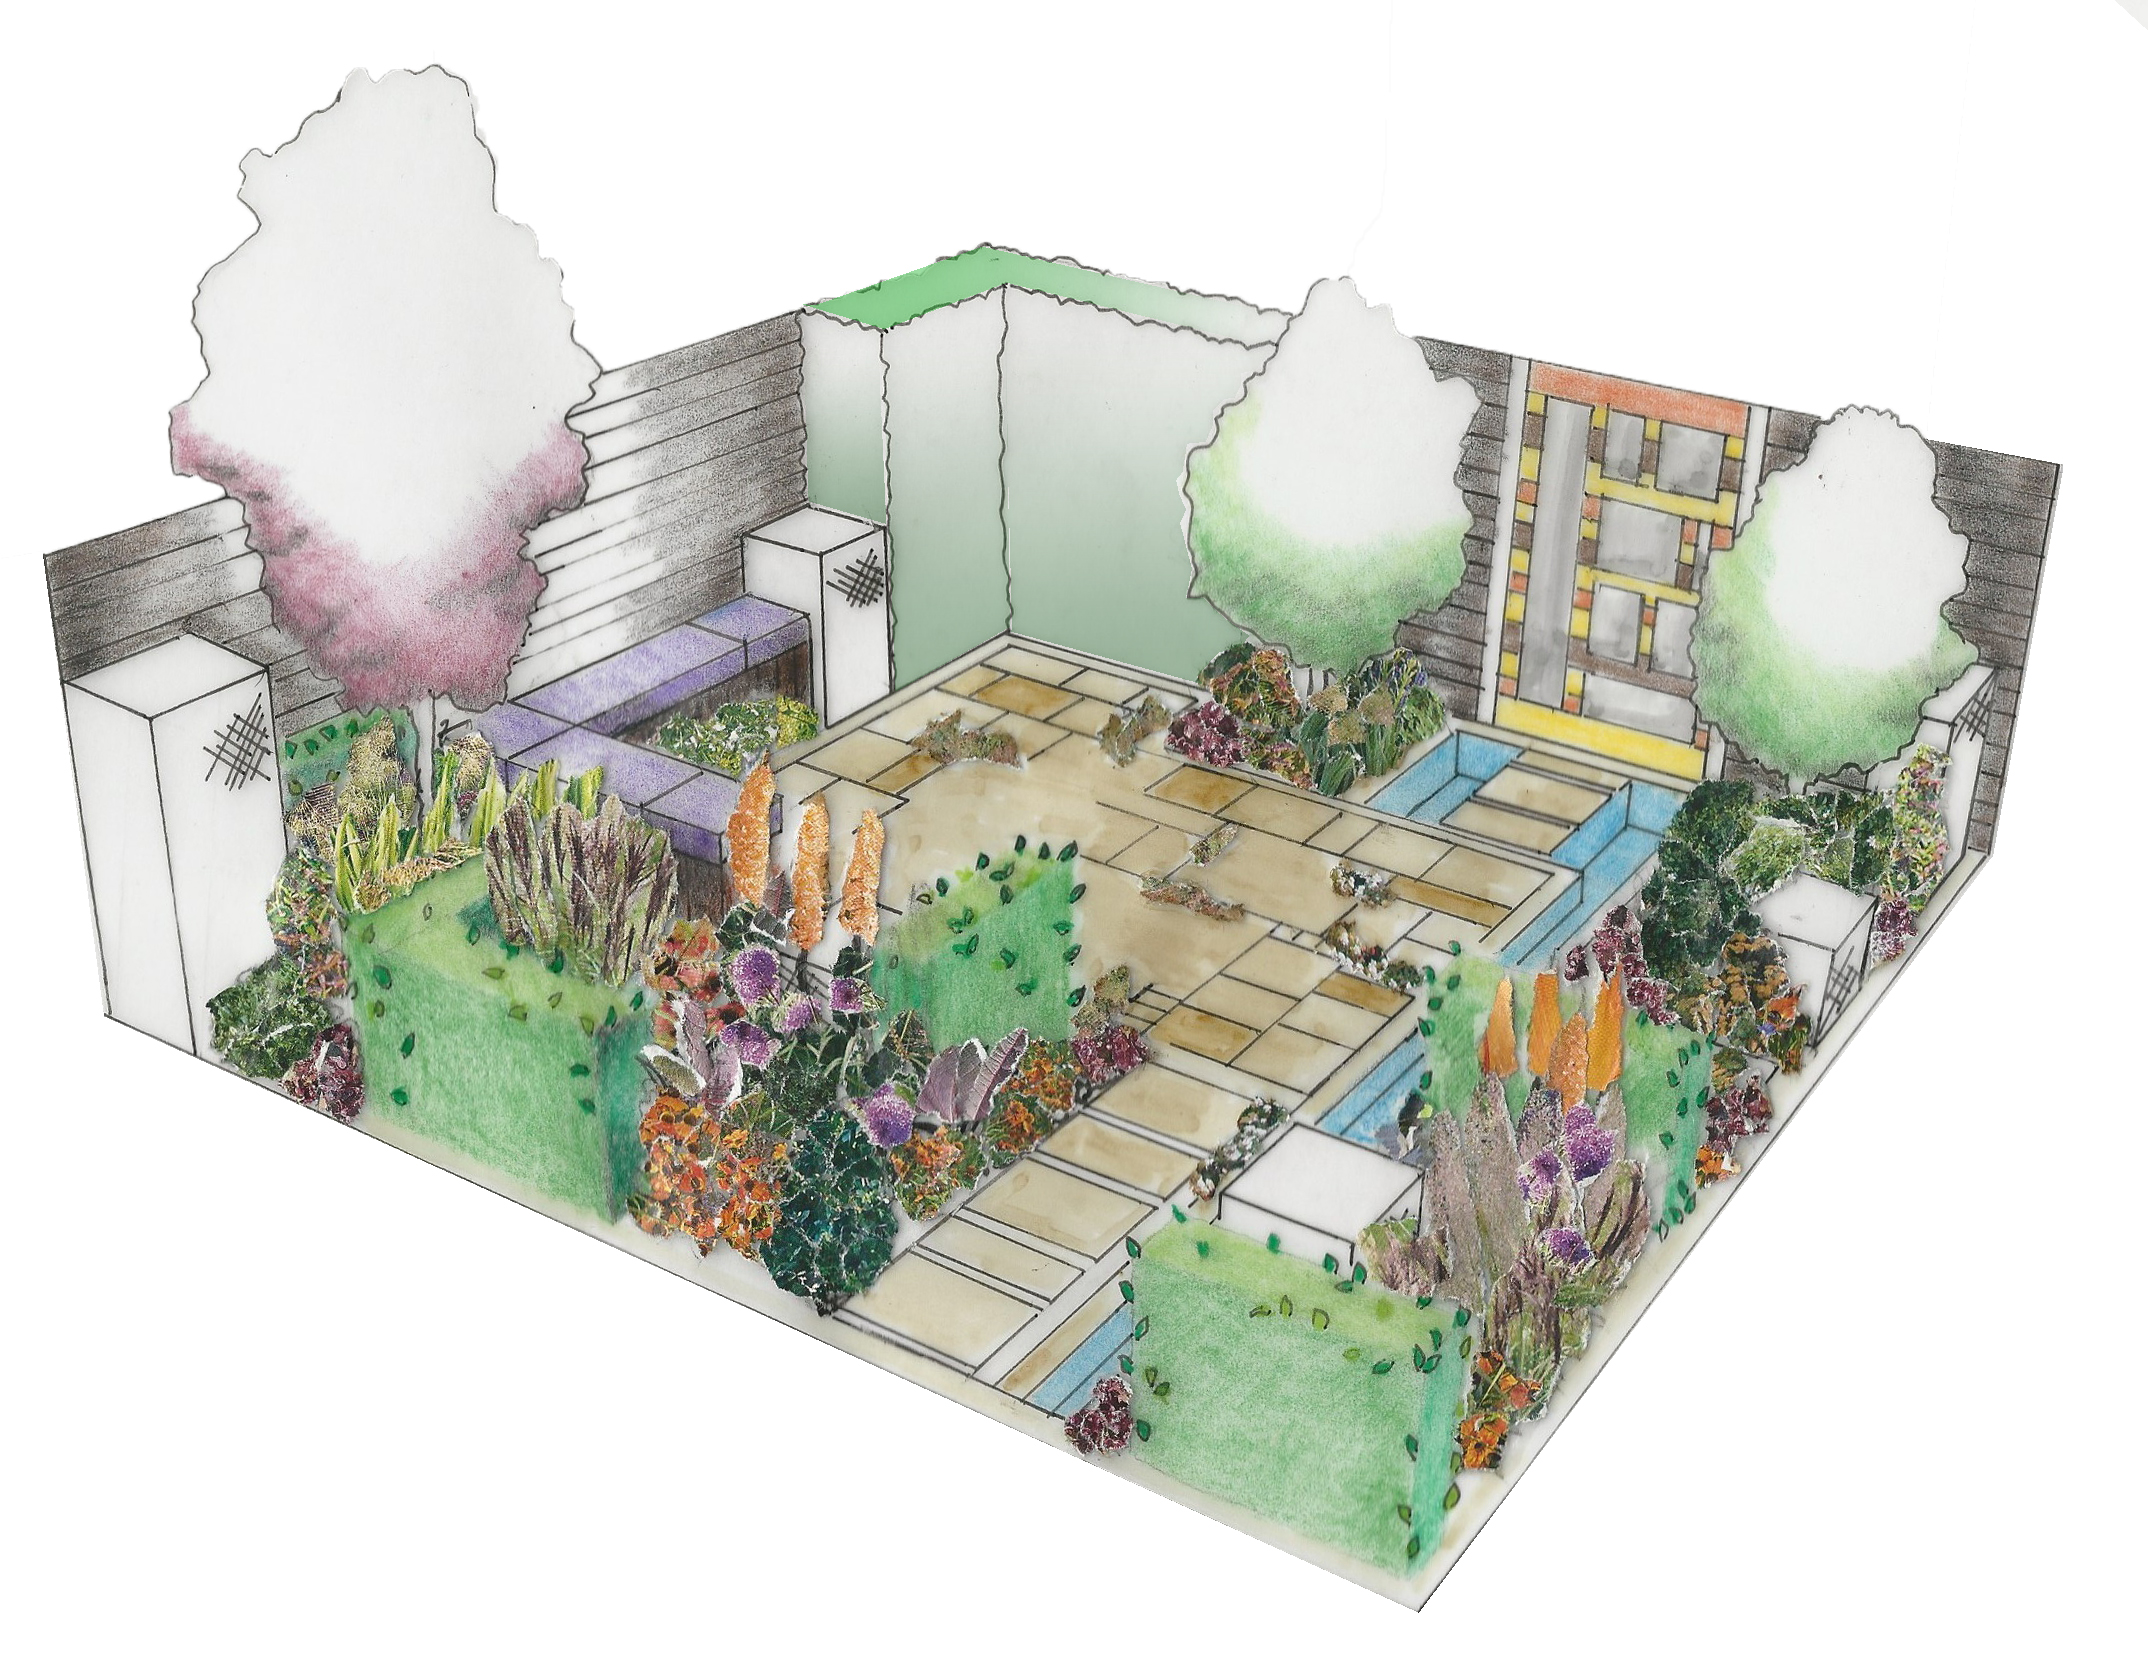 Bbc gardeners world live metamorphosis garden view for Landscape design paper